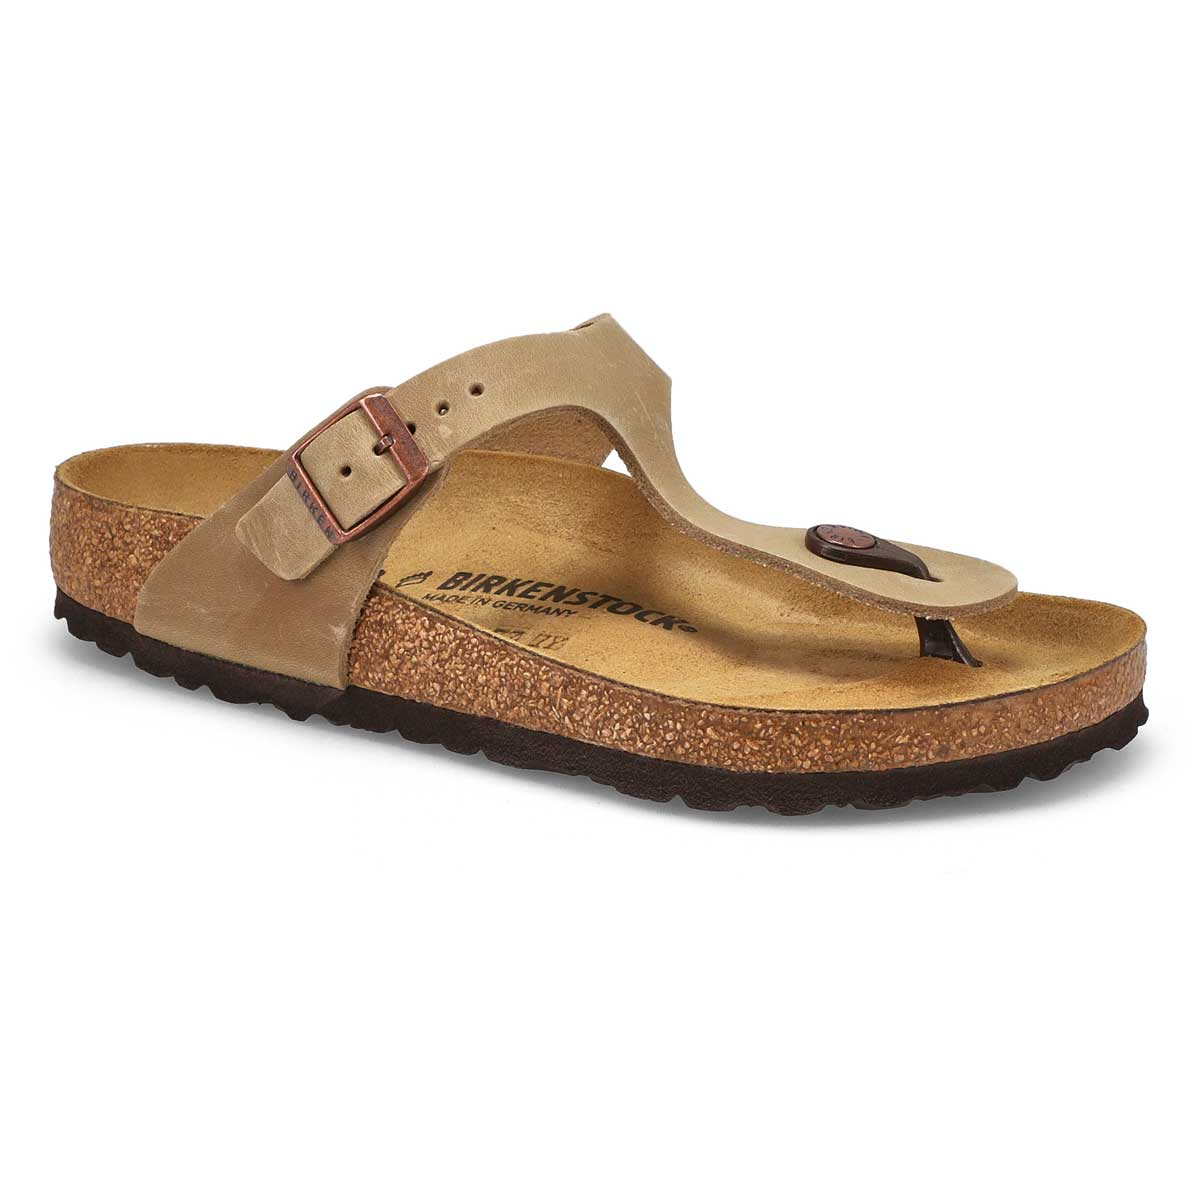 Women's GIZEH tobacco leather sandals